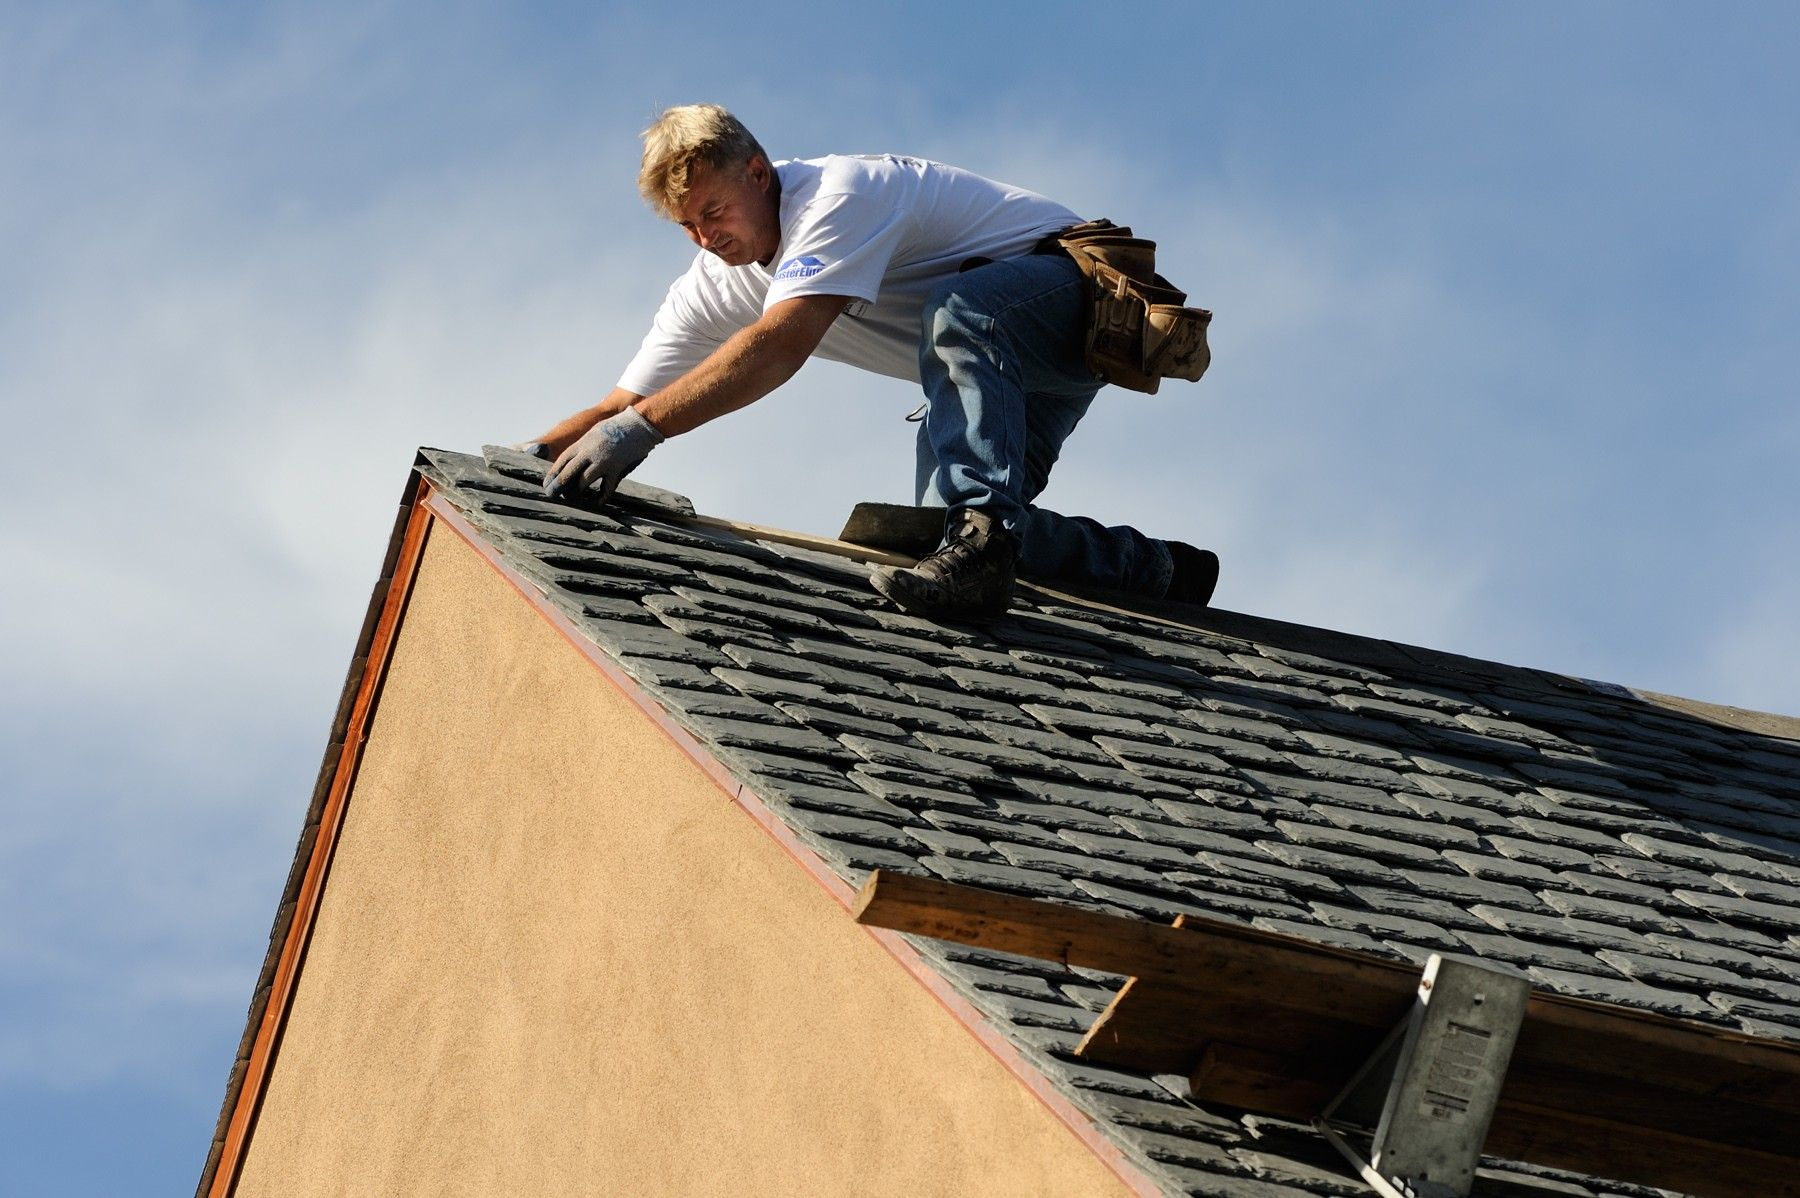 Roof Replacement Service In Palo Alto Ca In 2020 Roof Maintenance Roofing Services Roofing Contractors